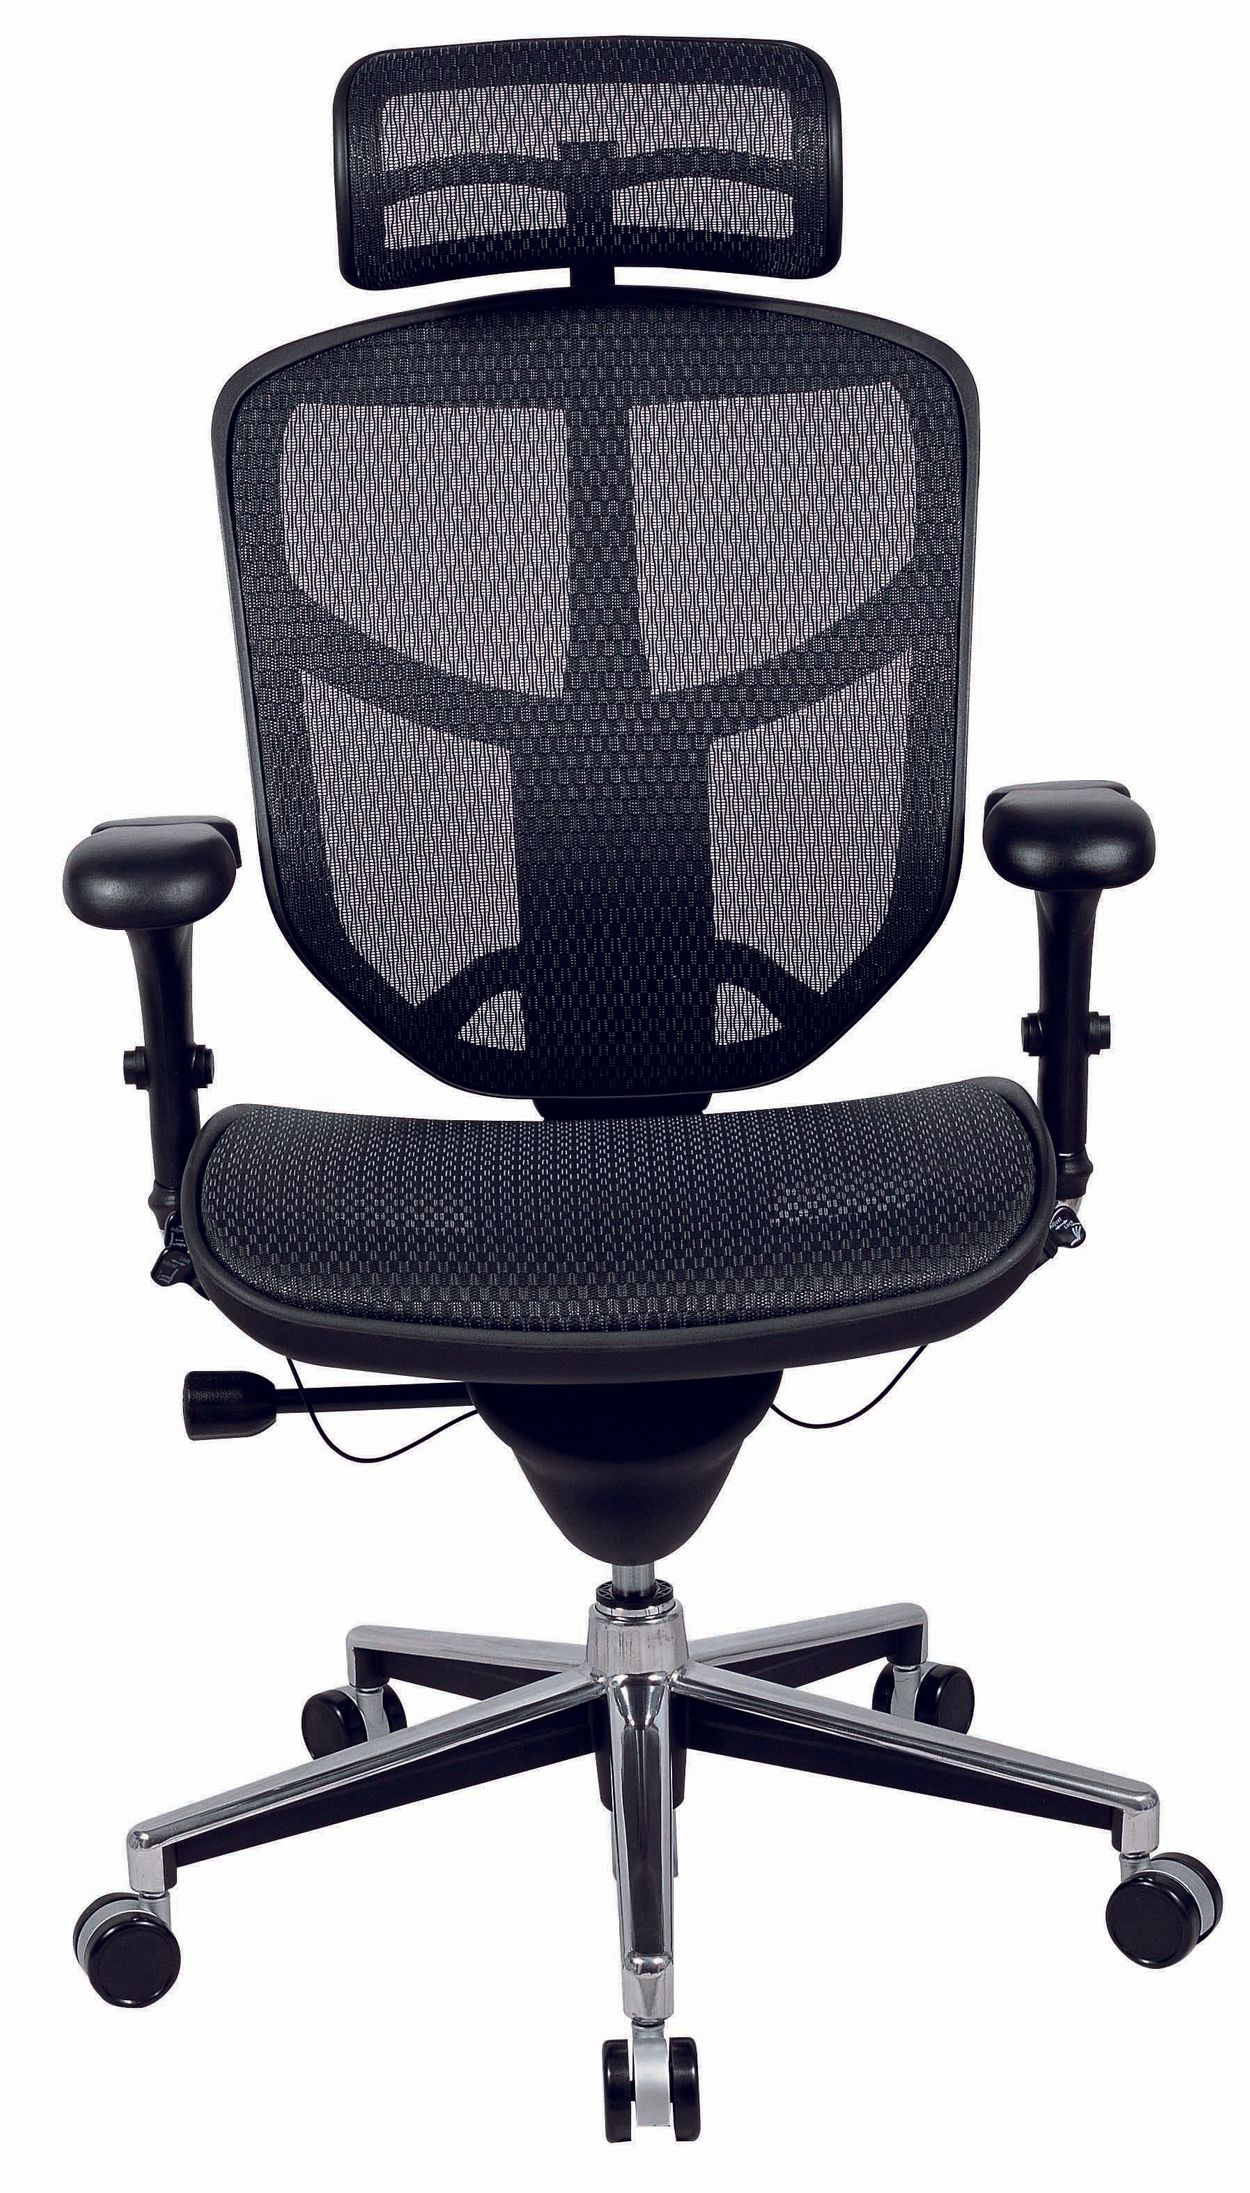 Desk Chairs Black Workpro Quantum 9000 Series Ergonomic Mesh High Back Chair With Headrest Office Products Iambrand Co Ke